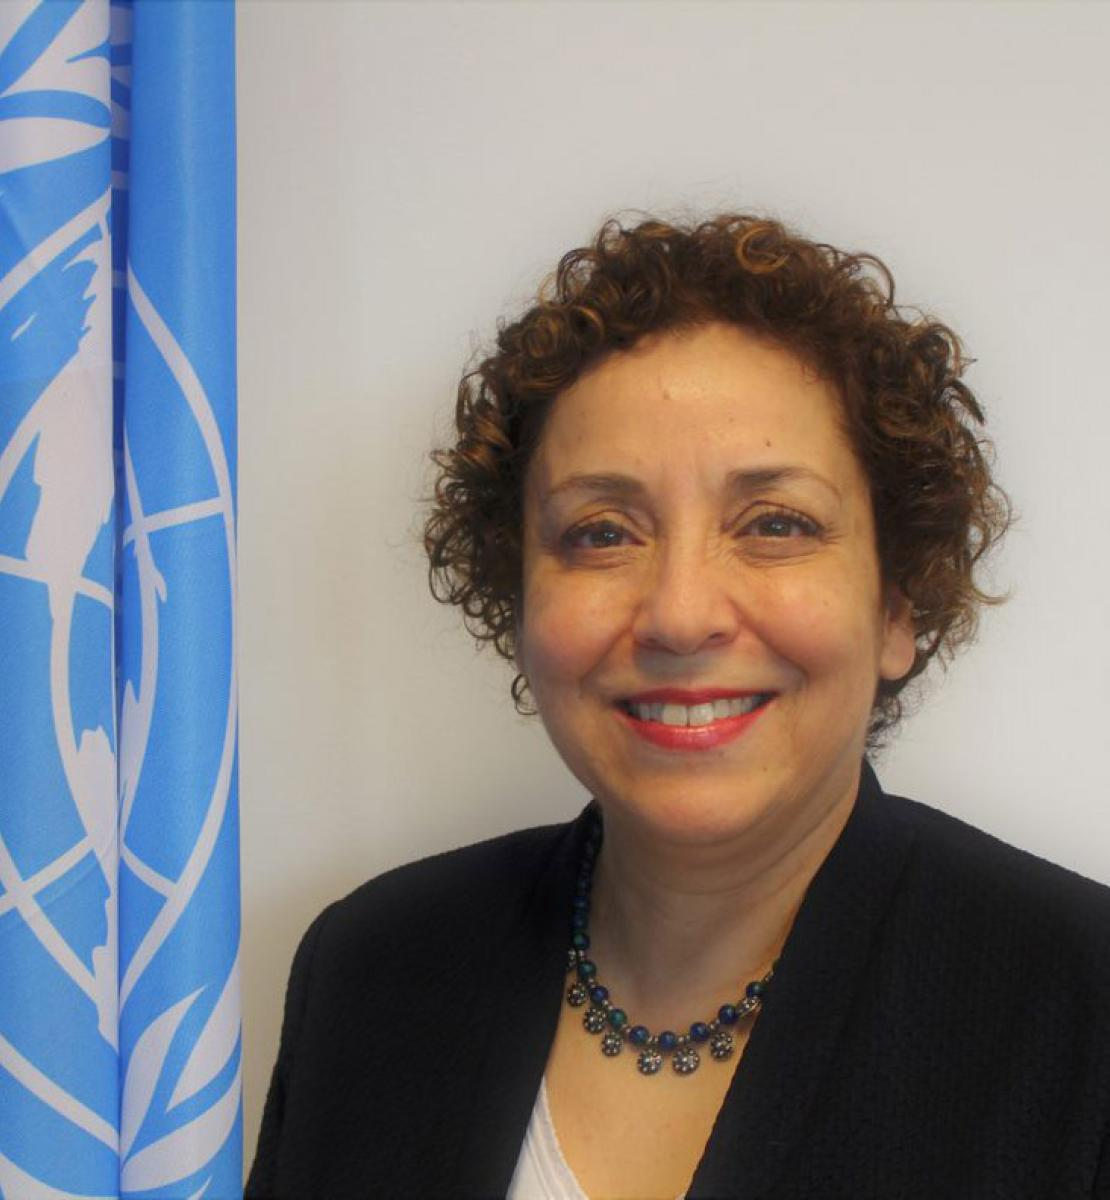 Photo shows a medium close-up of Sezin Sinanoglu standing in front of a white wall and the UN flag.